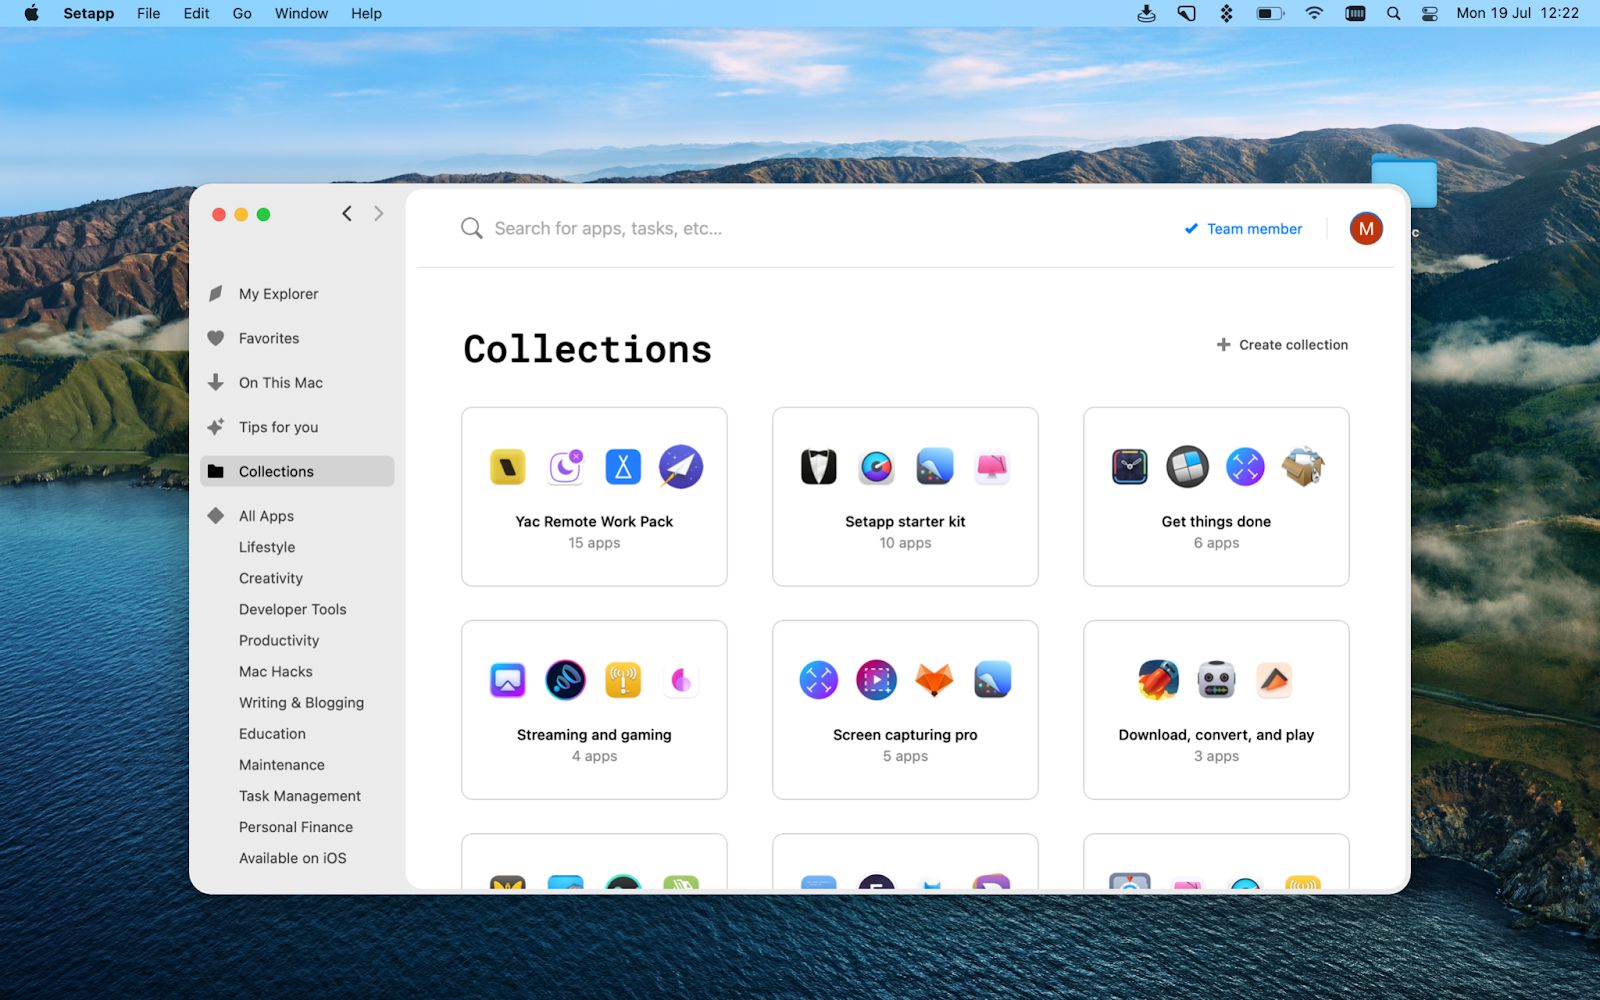 Setapp collections